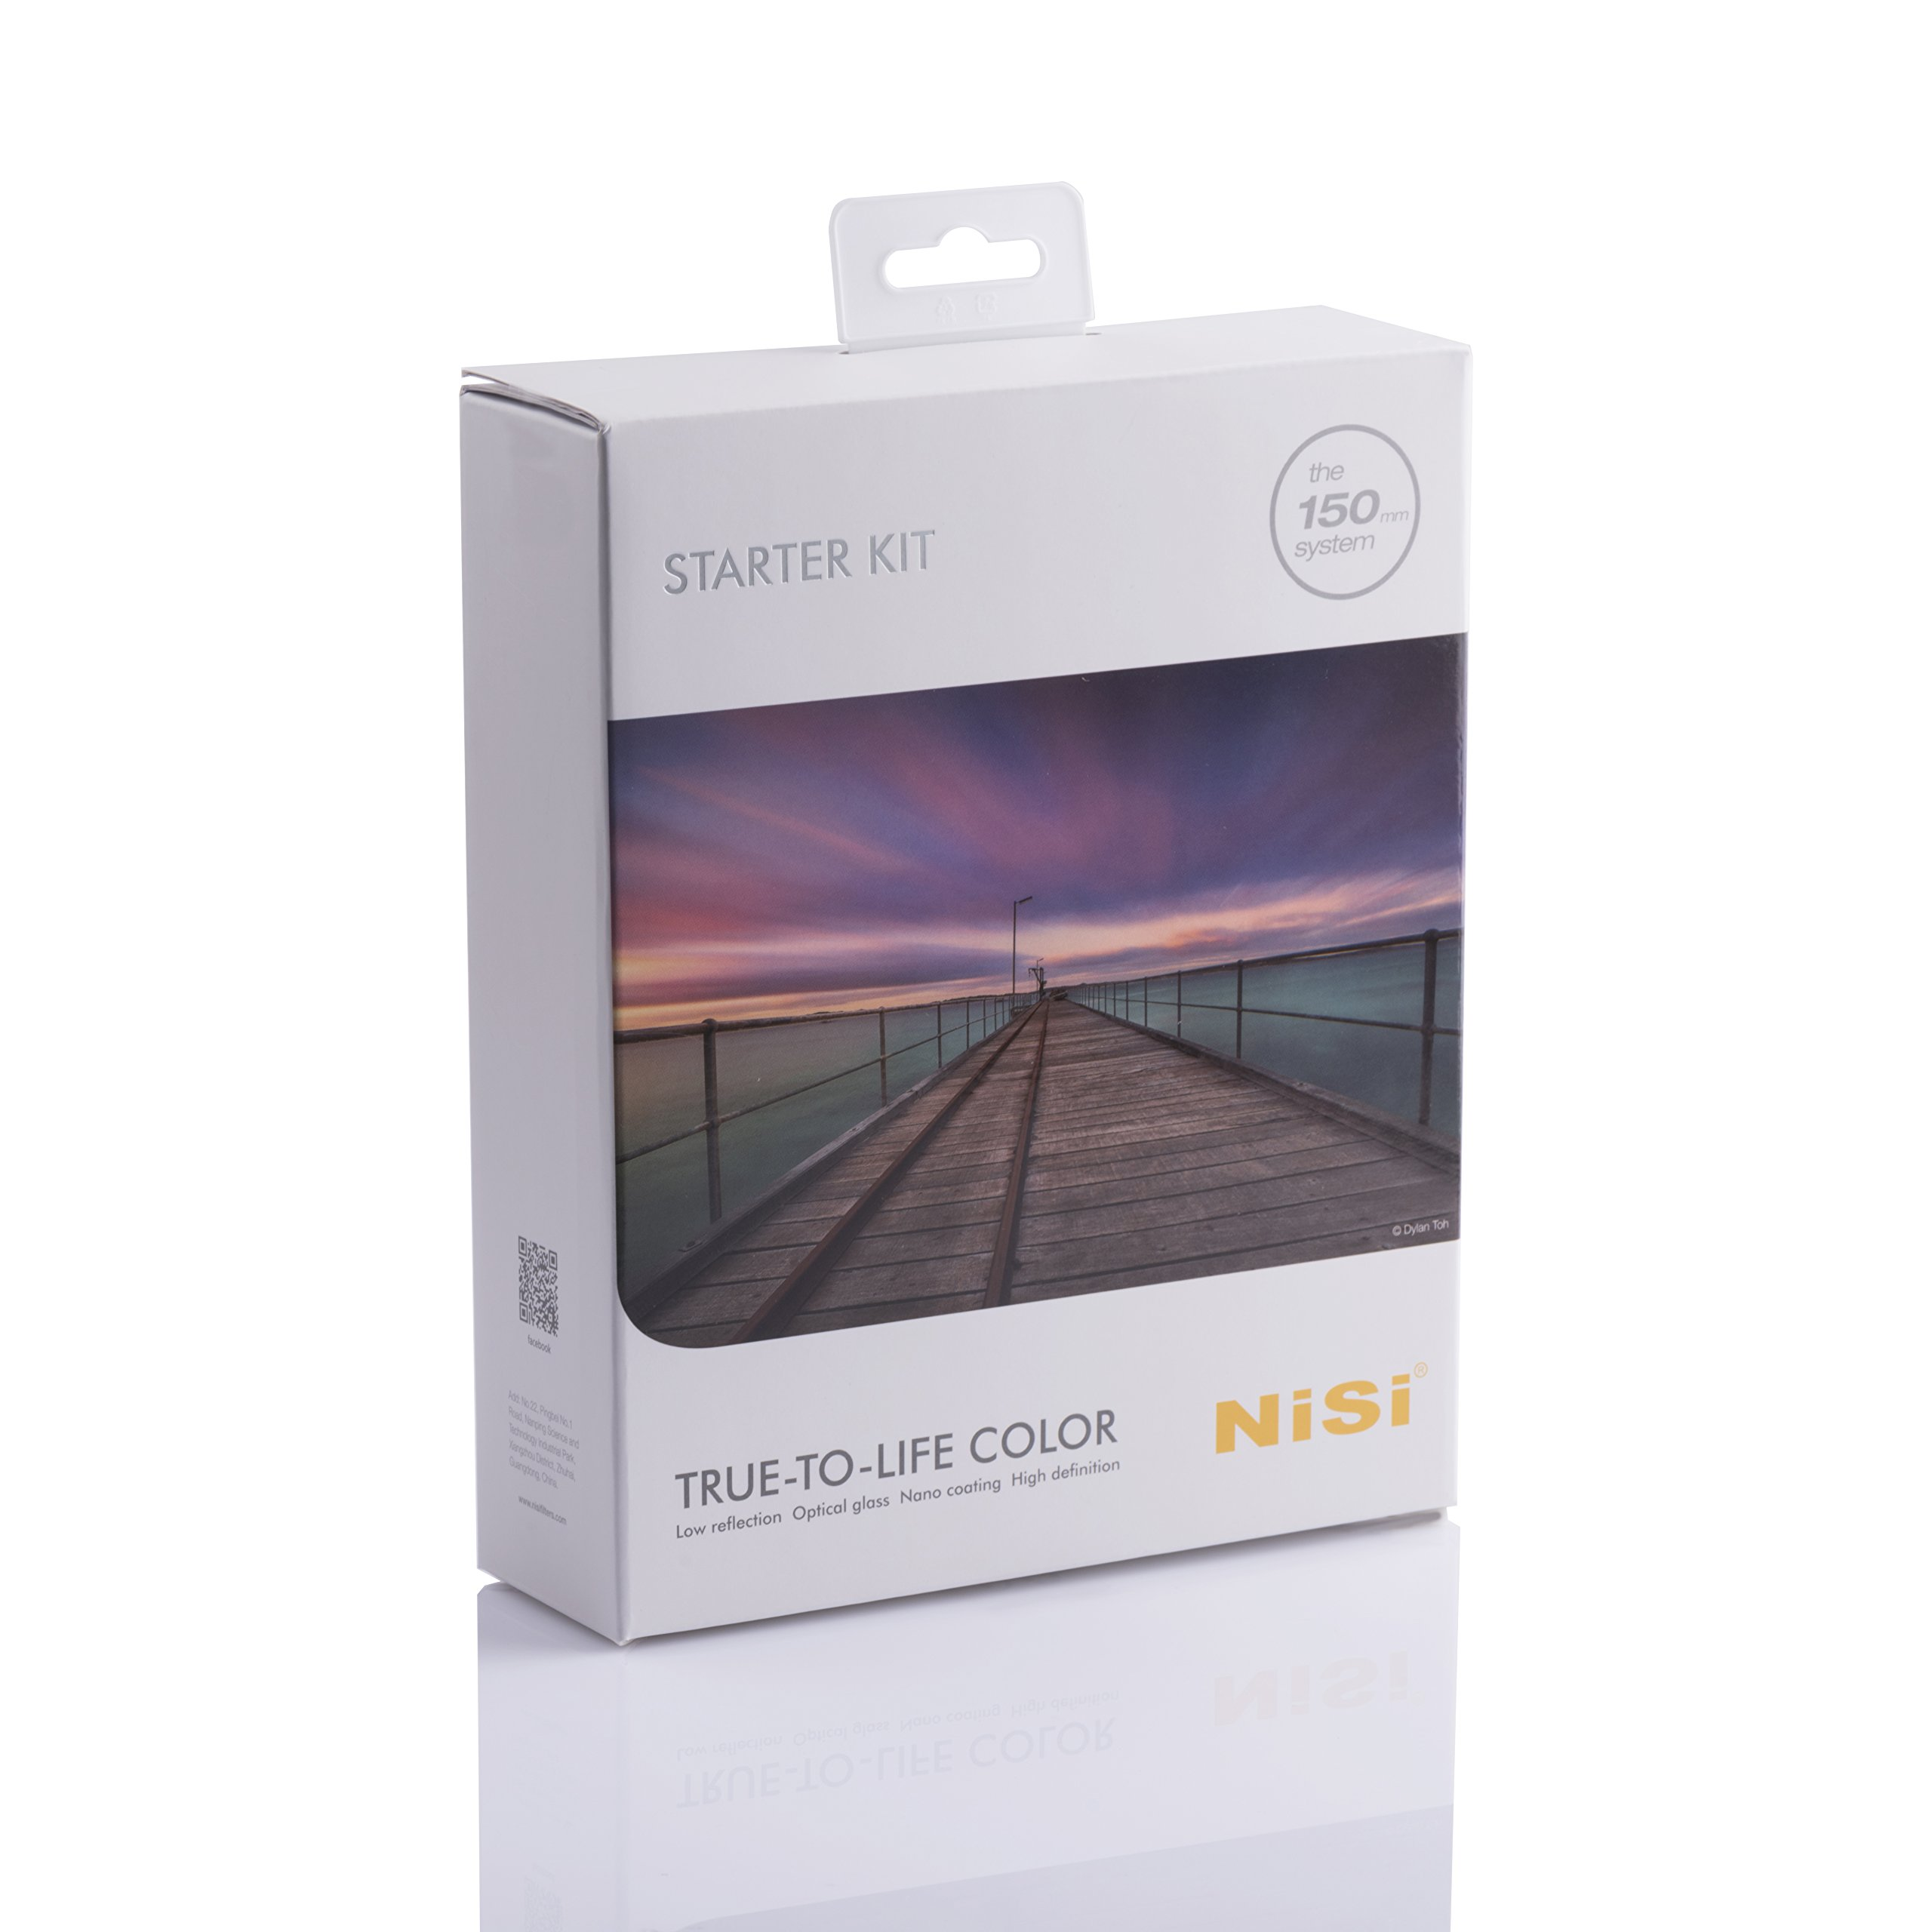 NiSi 150mm System Starter Filter Kit-1pc Soft GND Filter, 2pcs ND Filters and Accessories